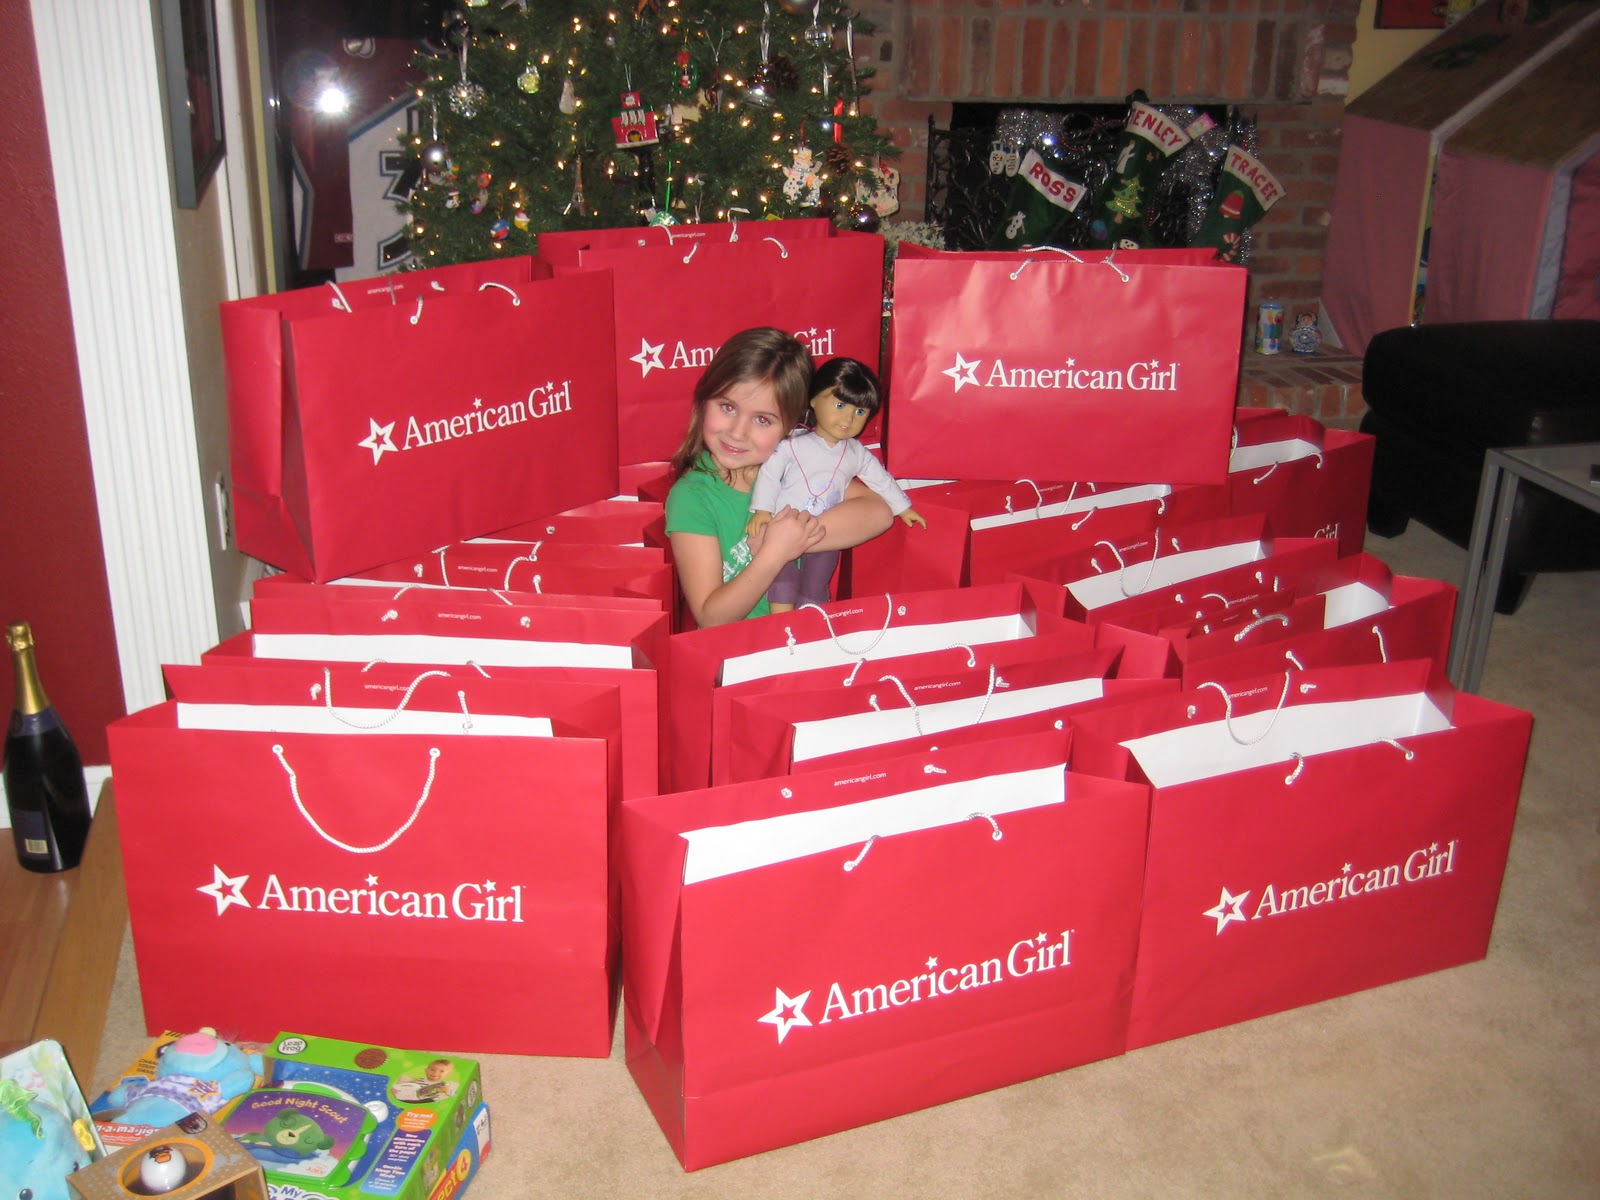 ps check out my doll from jennifer at the american girl store in lone tree appearing in the picture with me - Christmas Decorations For American Girl Dolls